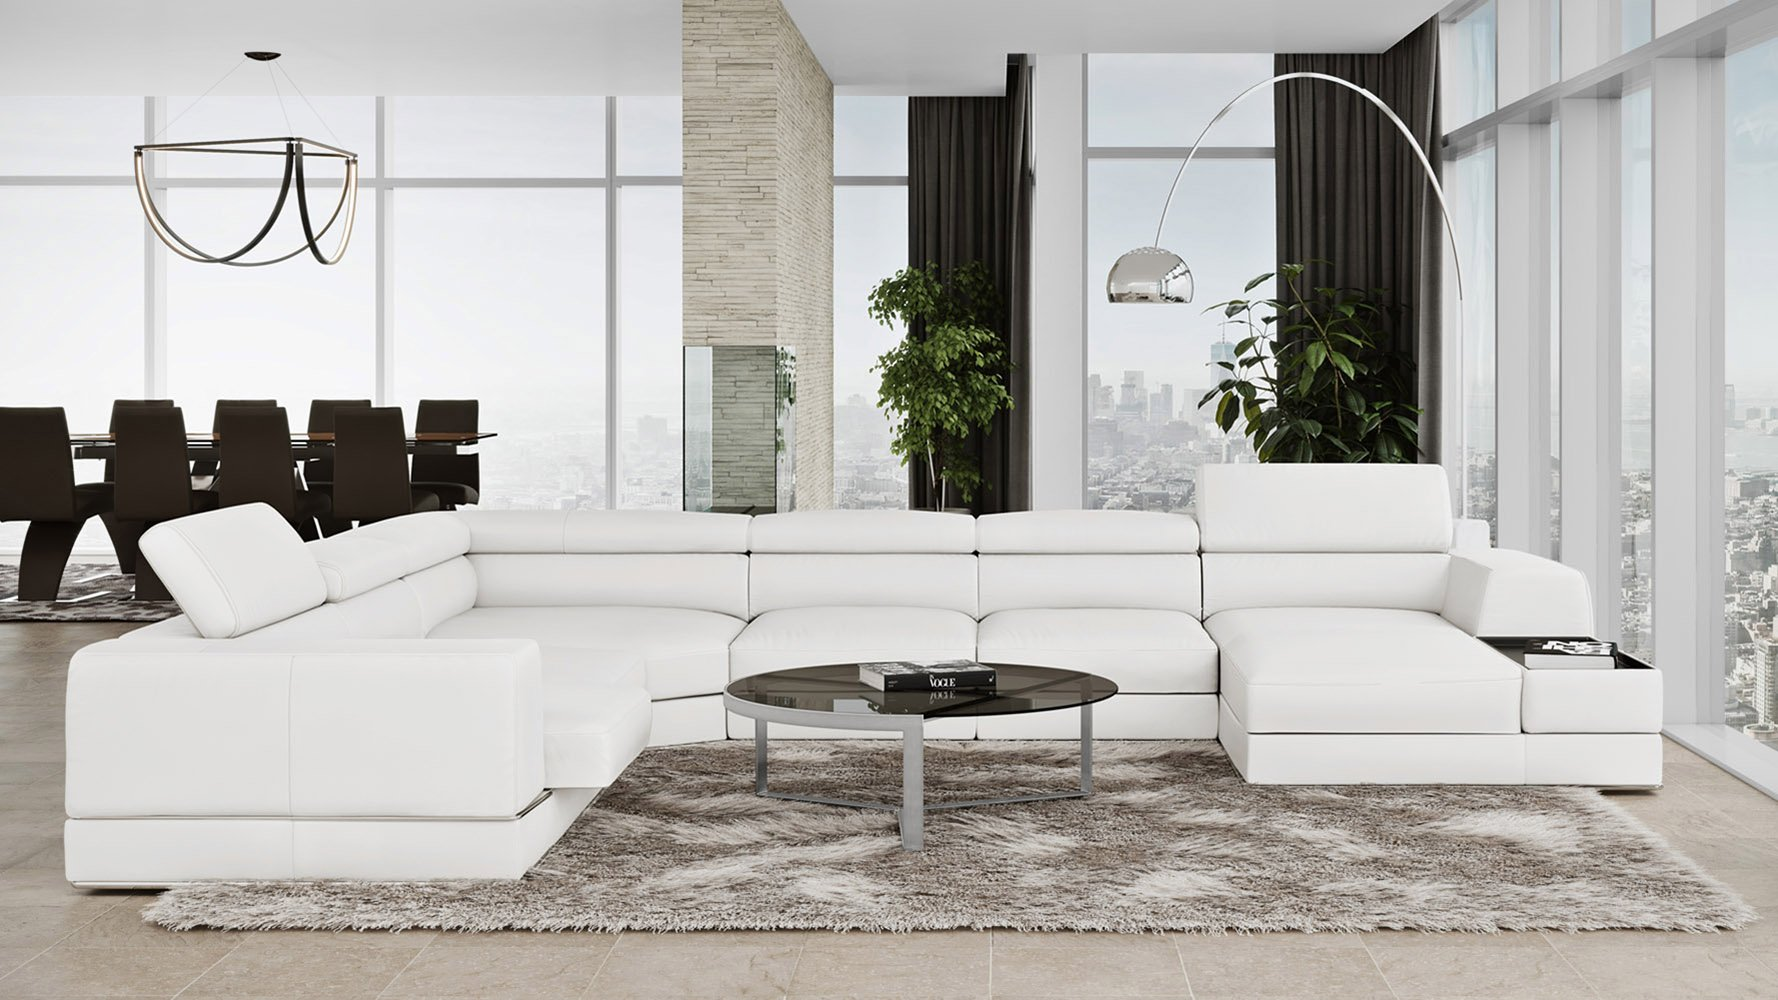 - Wynn White Leather Sectional Sofa With Adjustable Headrests Zuri Furniture